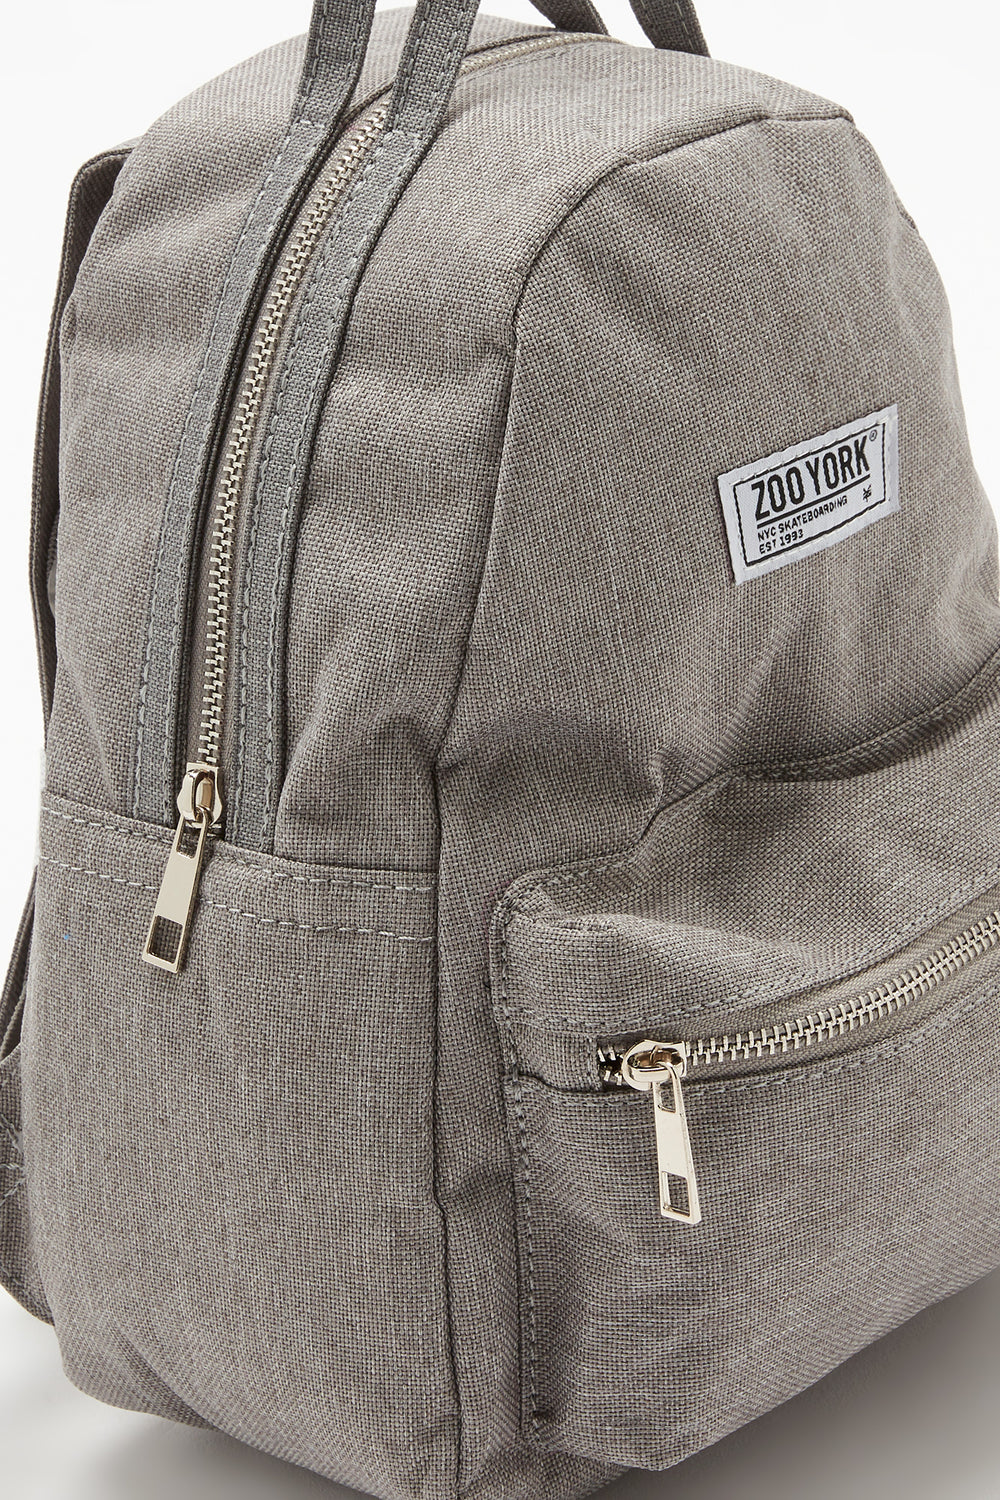 Zoo York Grey Mini Backpack Heather Grey